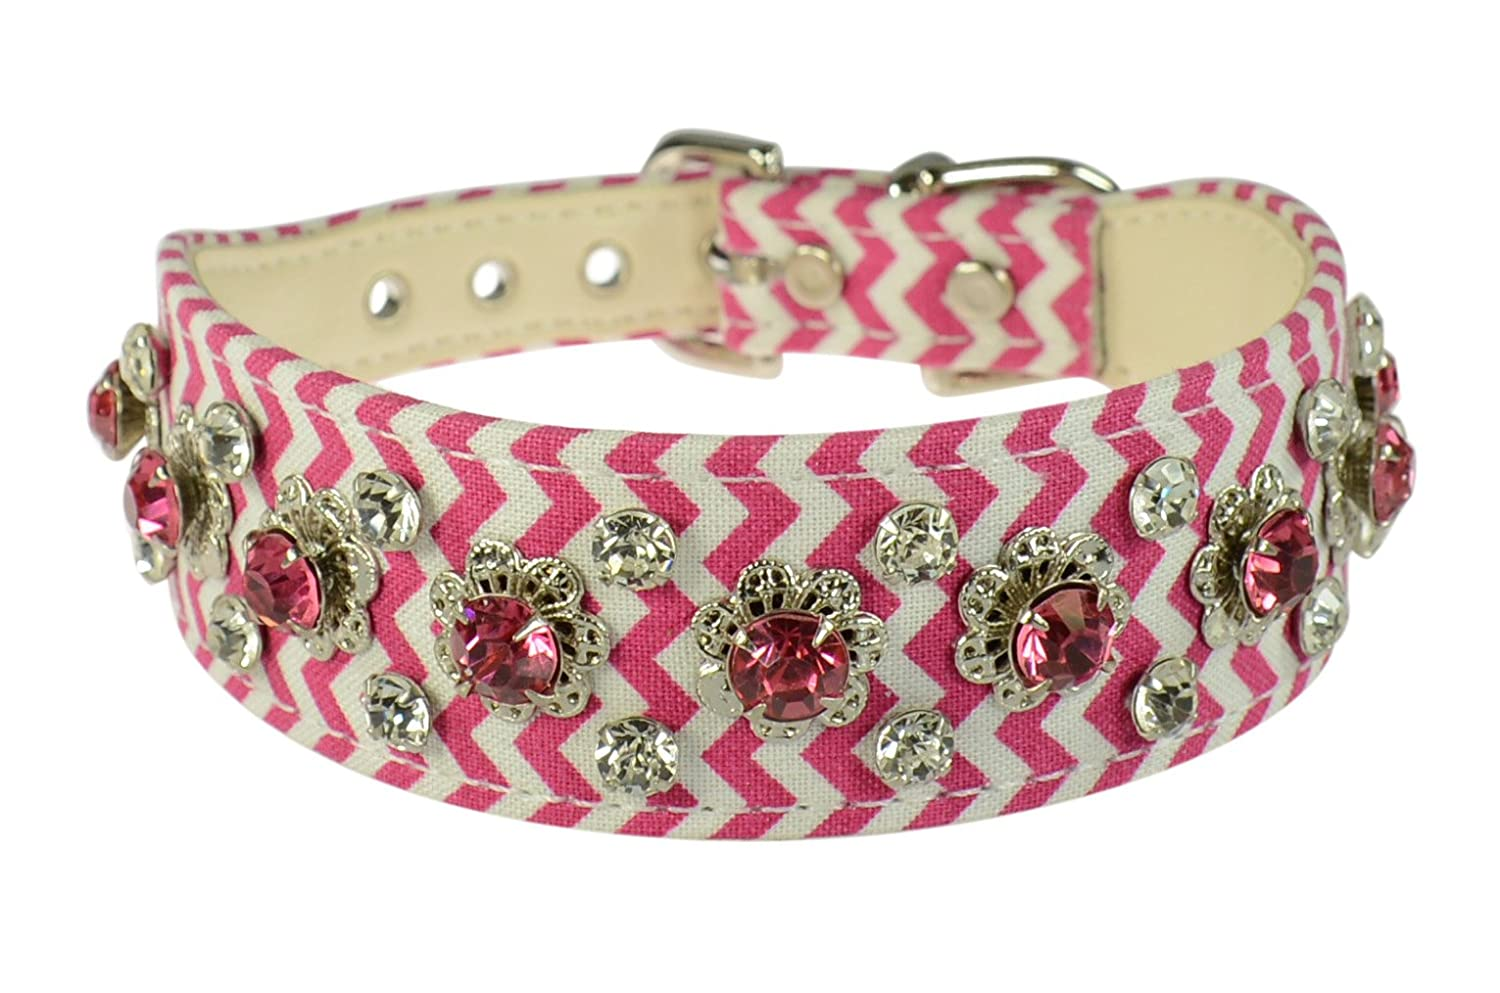 Evans Collars Shaped Collar with Dandy Pattern Jewels, Size 14, Mini Chevron, Pink